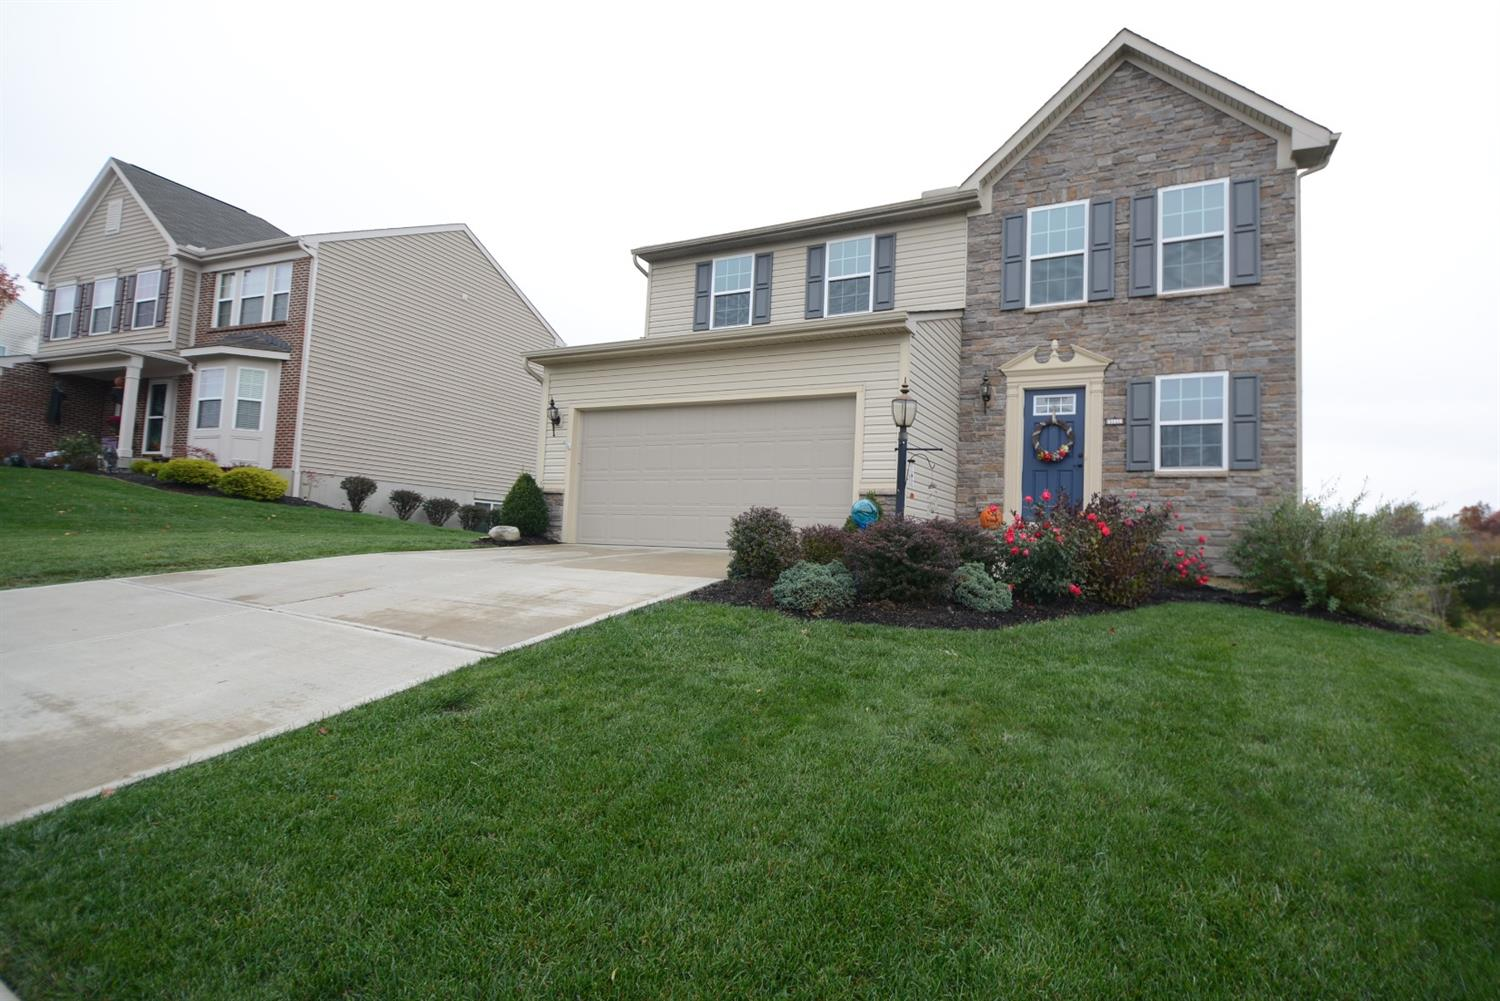 8446 Forest Valley Dr Colerain Twp.West, OH